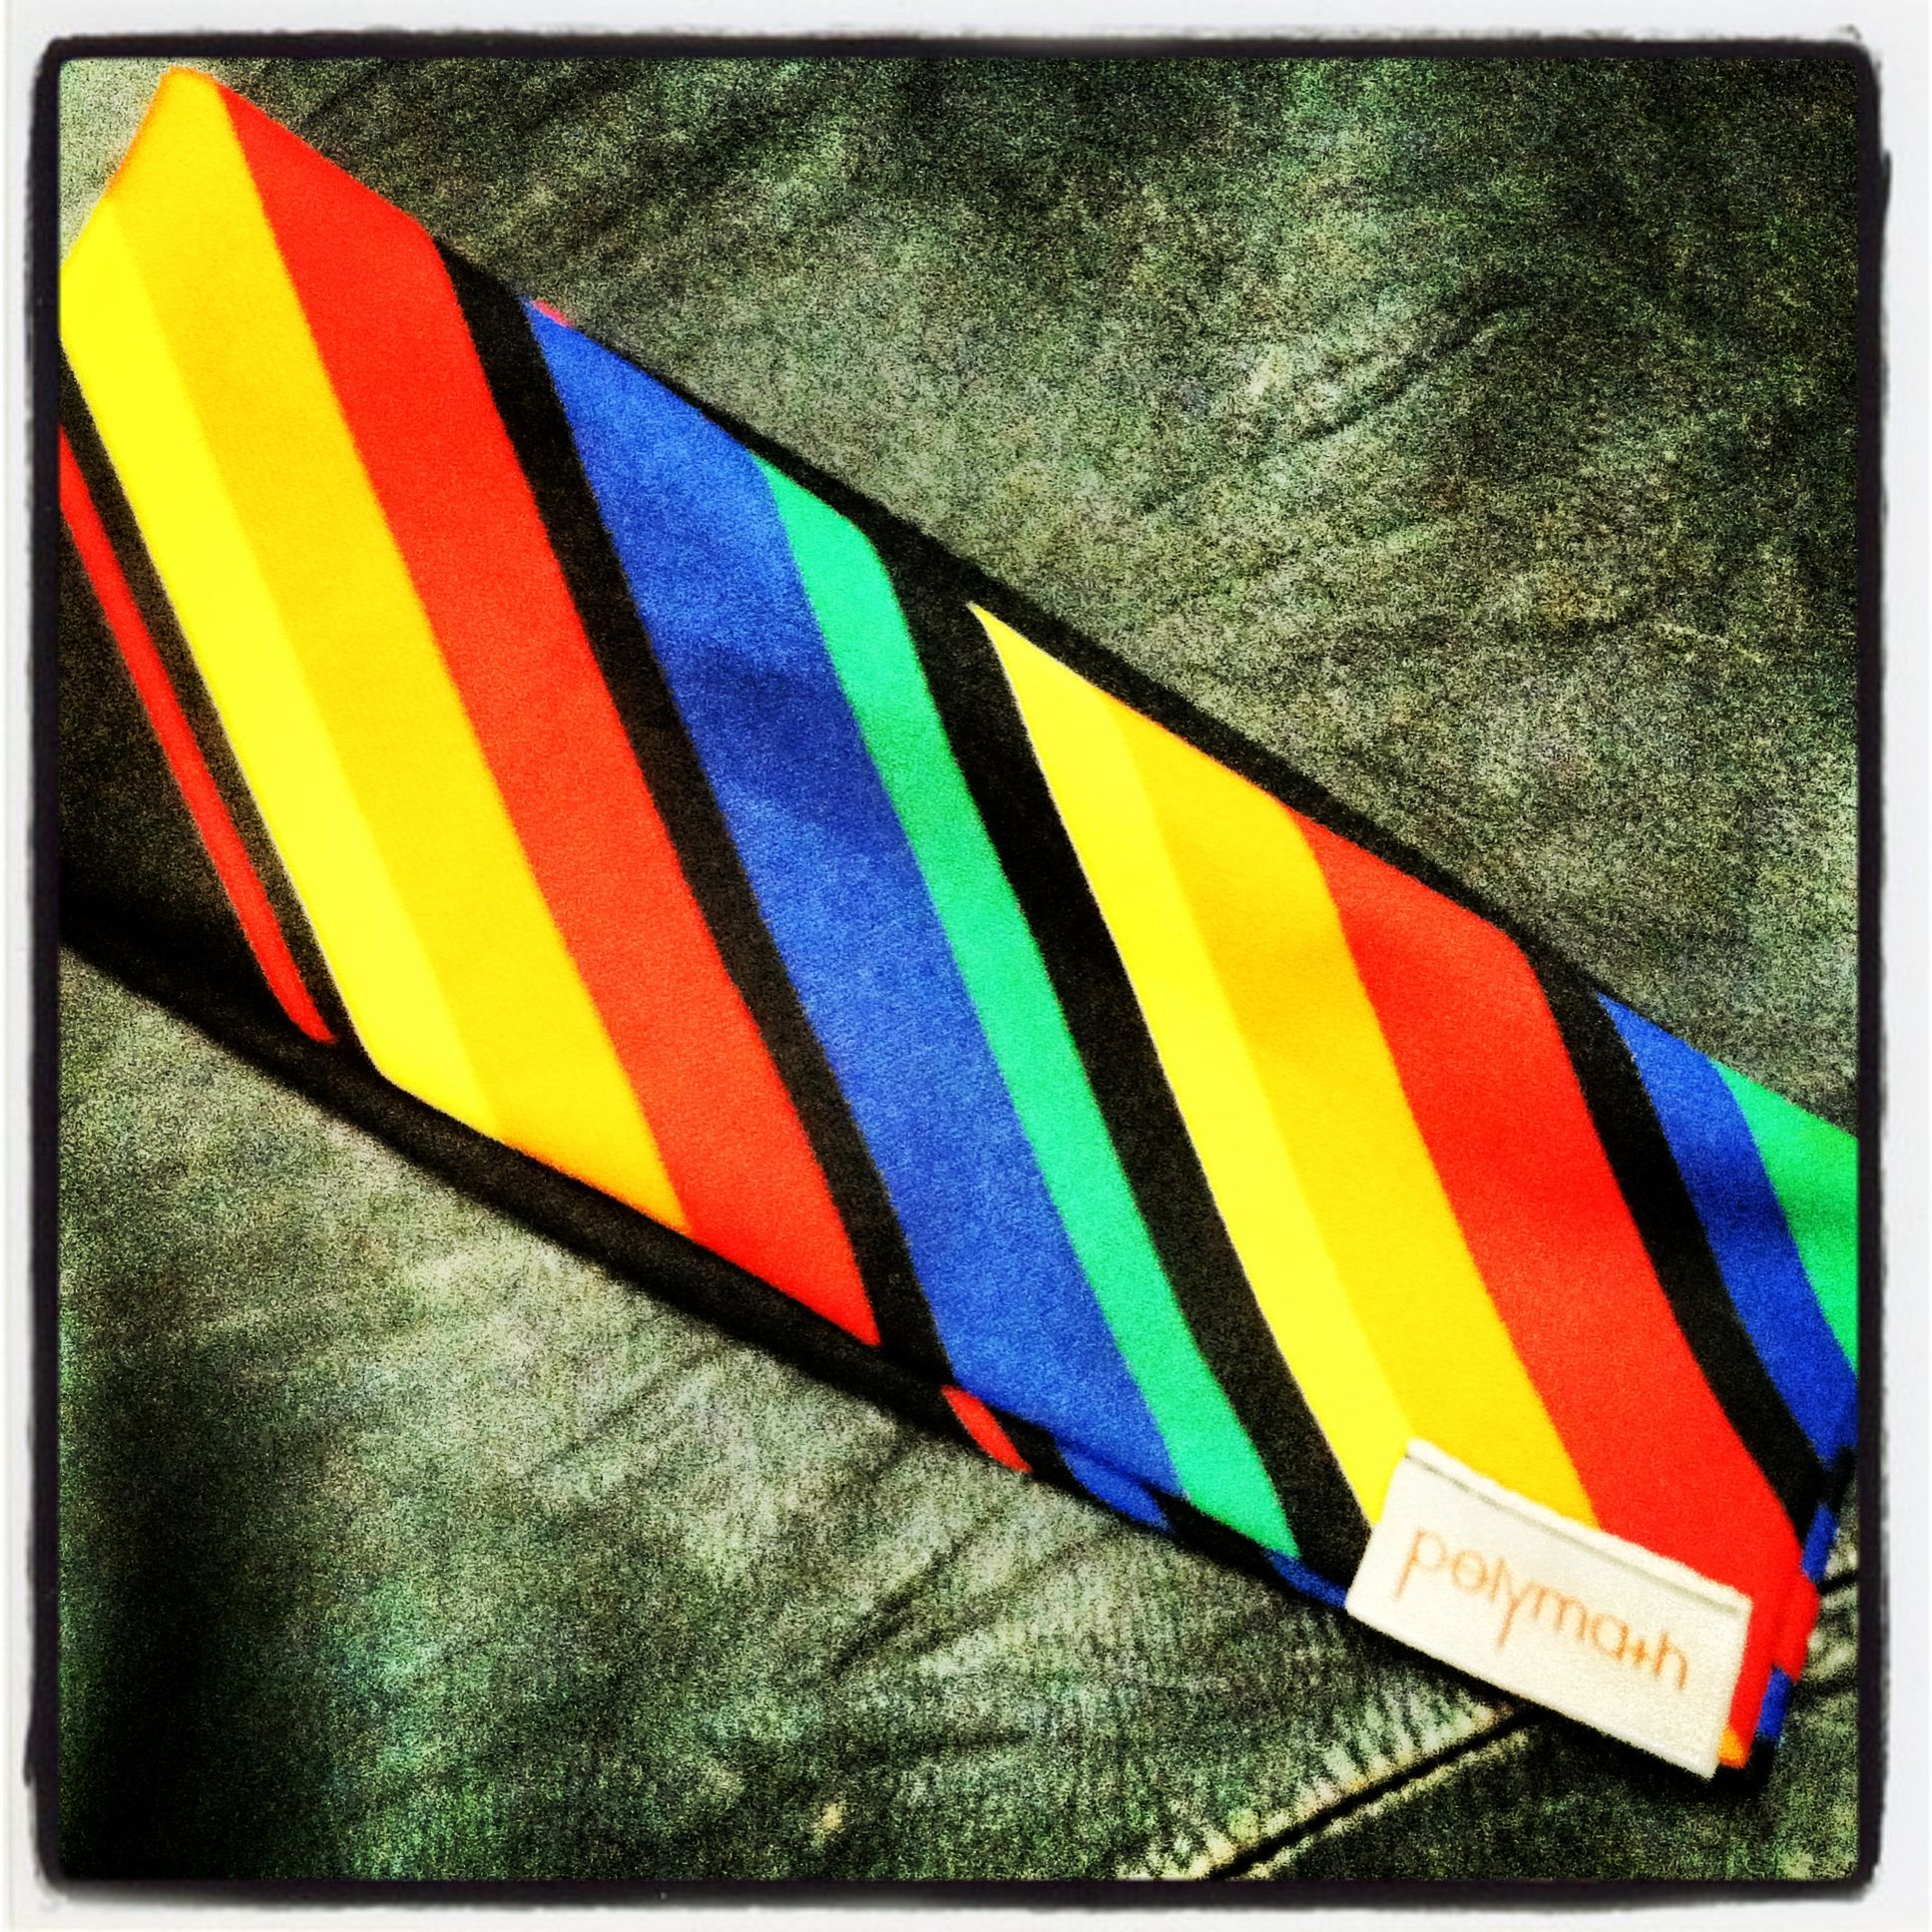 Color blast Mexican serape inspired vintage polyester print headband. Sometimes fashion and food descriptions forgo hyphens and punctuation altogether.